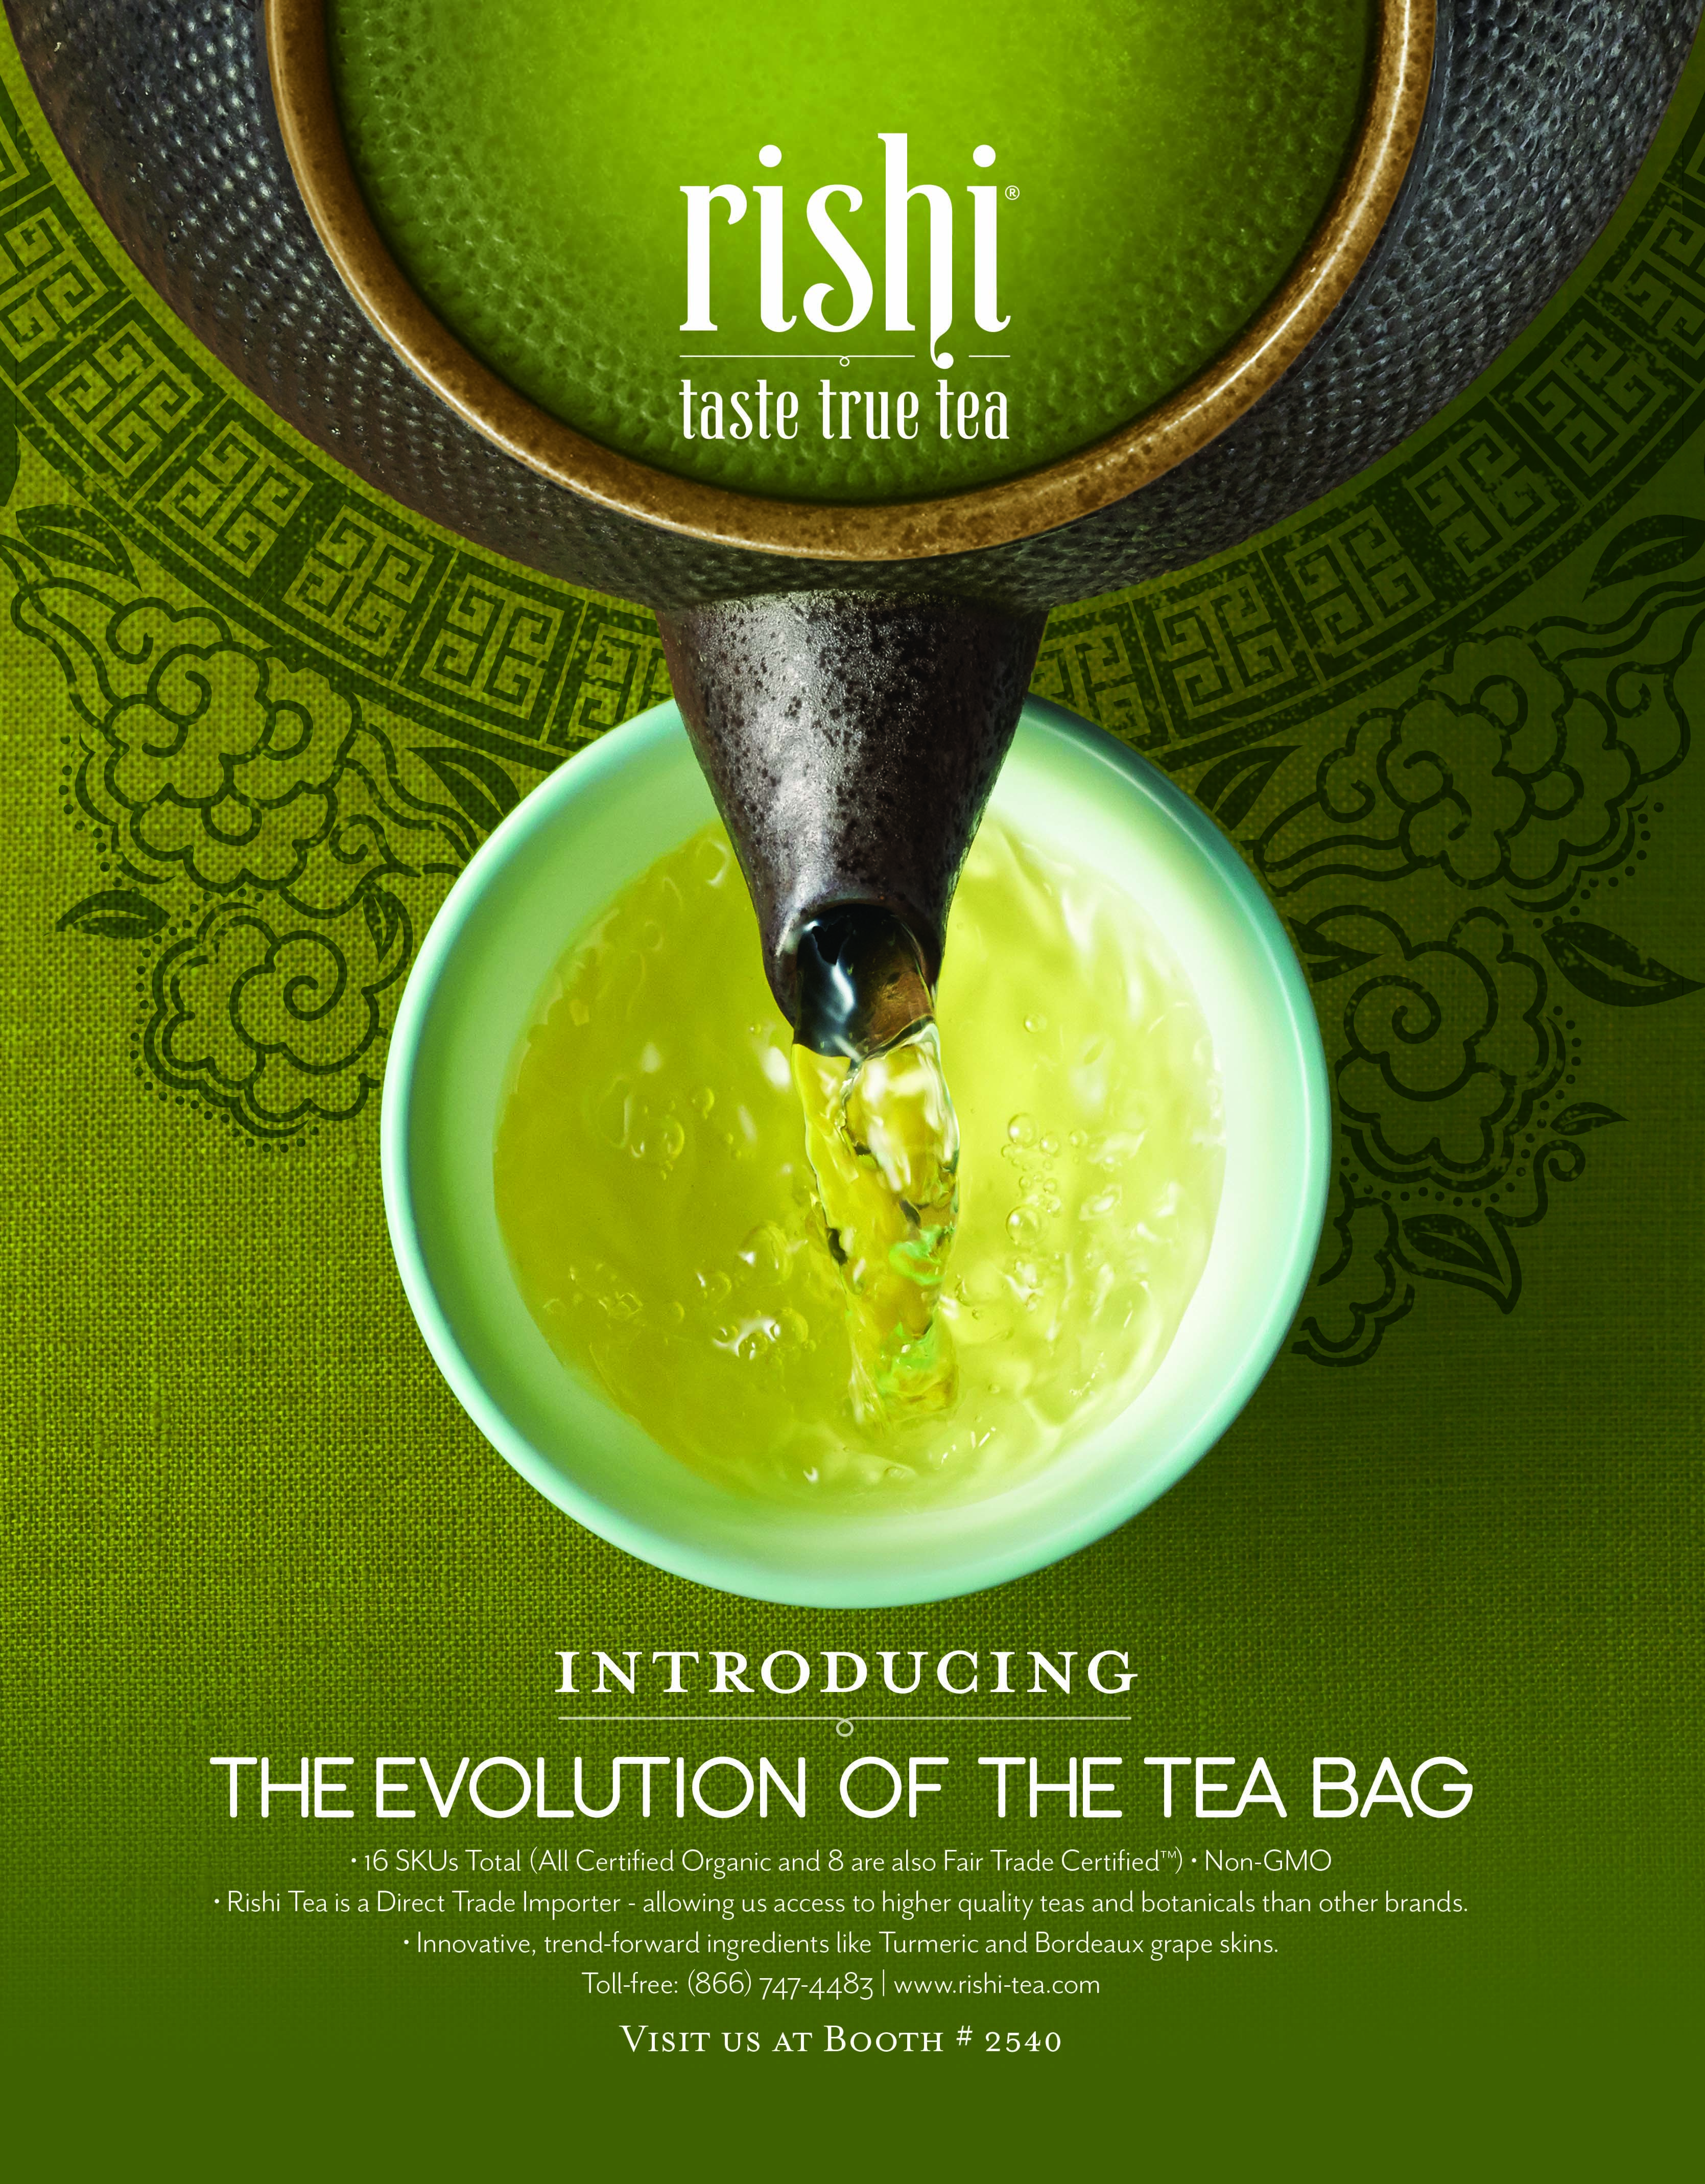 A New Line Of Tea Bags From Rishi Will Raise The Bar For Organic Epicurean Caliber Bag